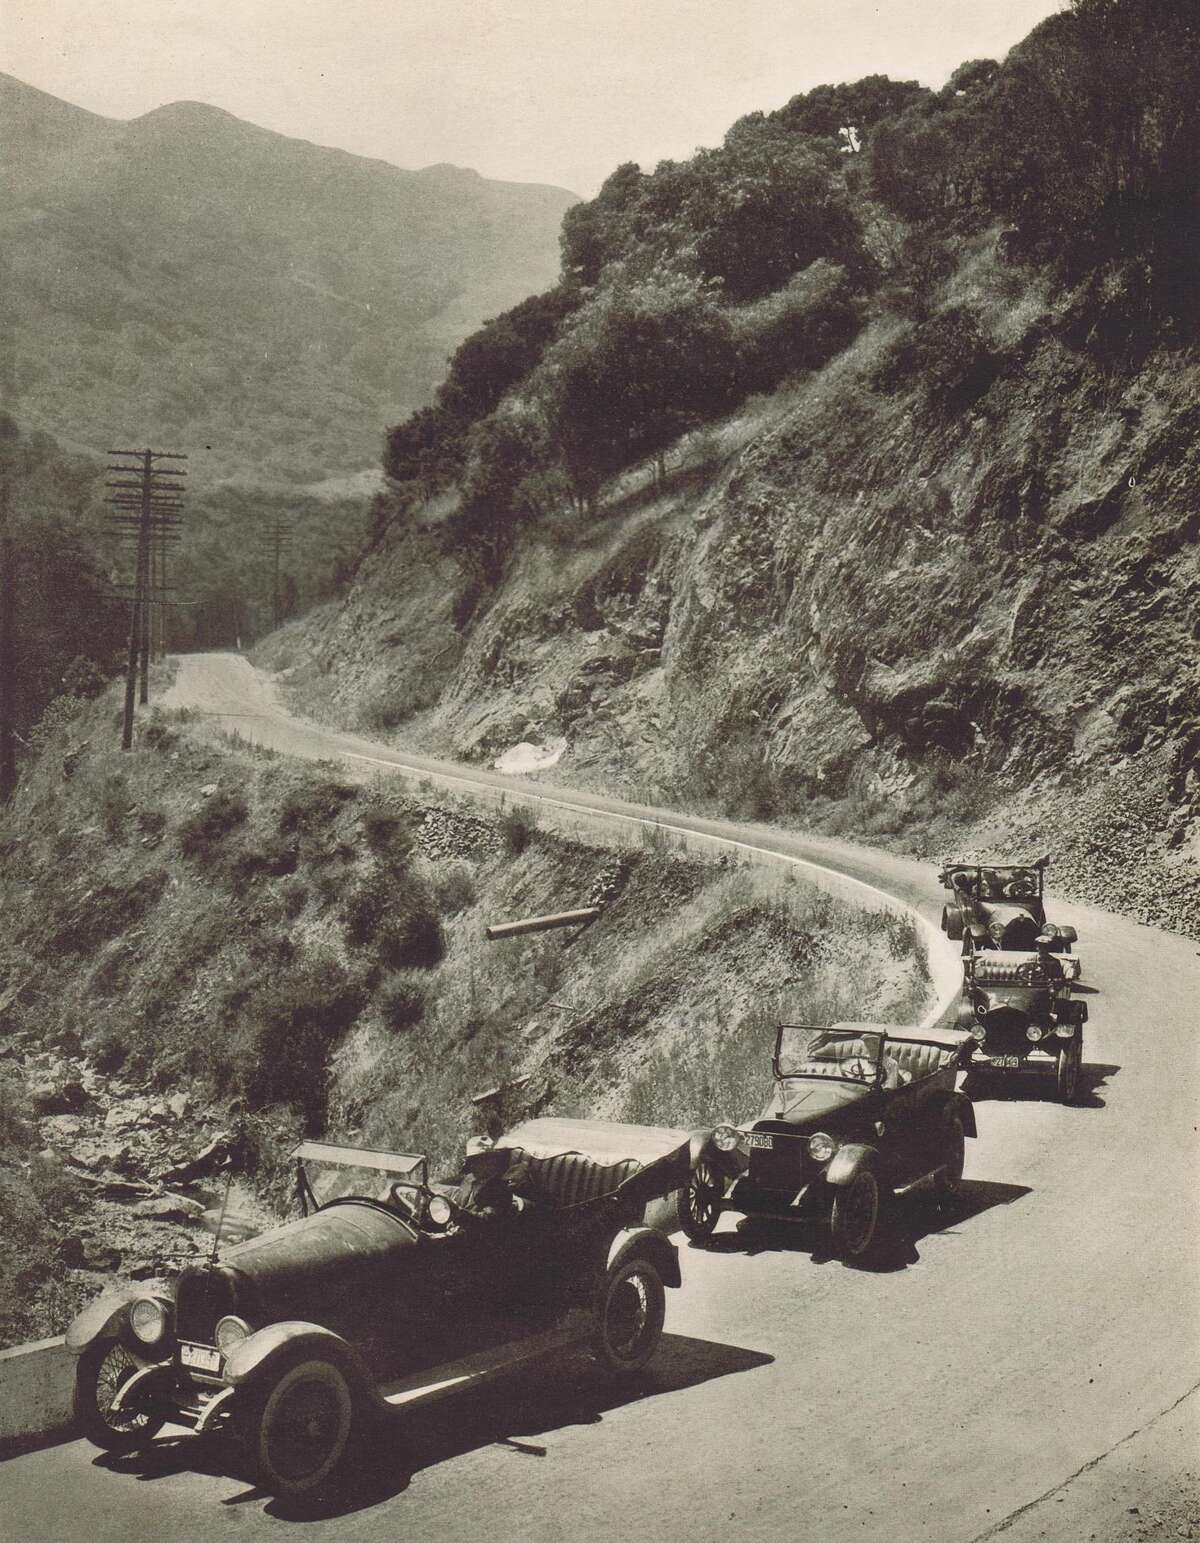 Driving along Skyline in Berkeley, CA in 1916. This is possibly Sibley Volcanic Regional Park along East Bay Skyline Drive.